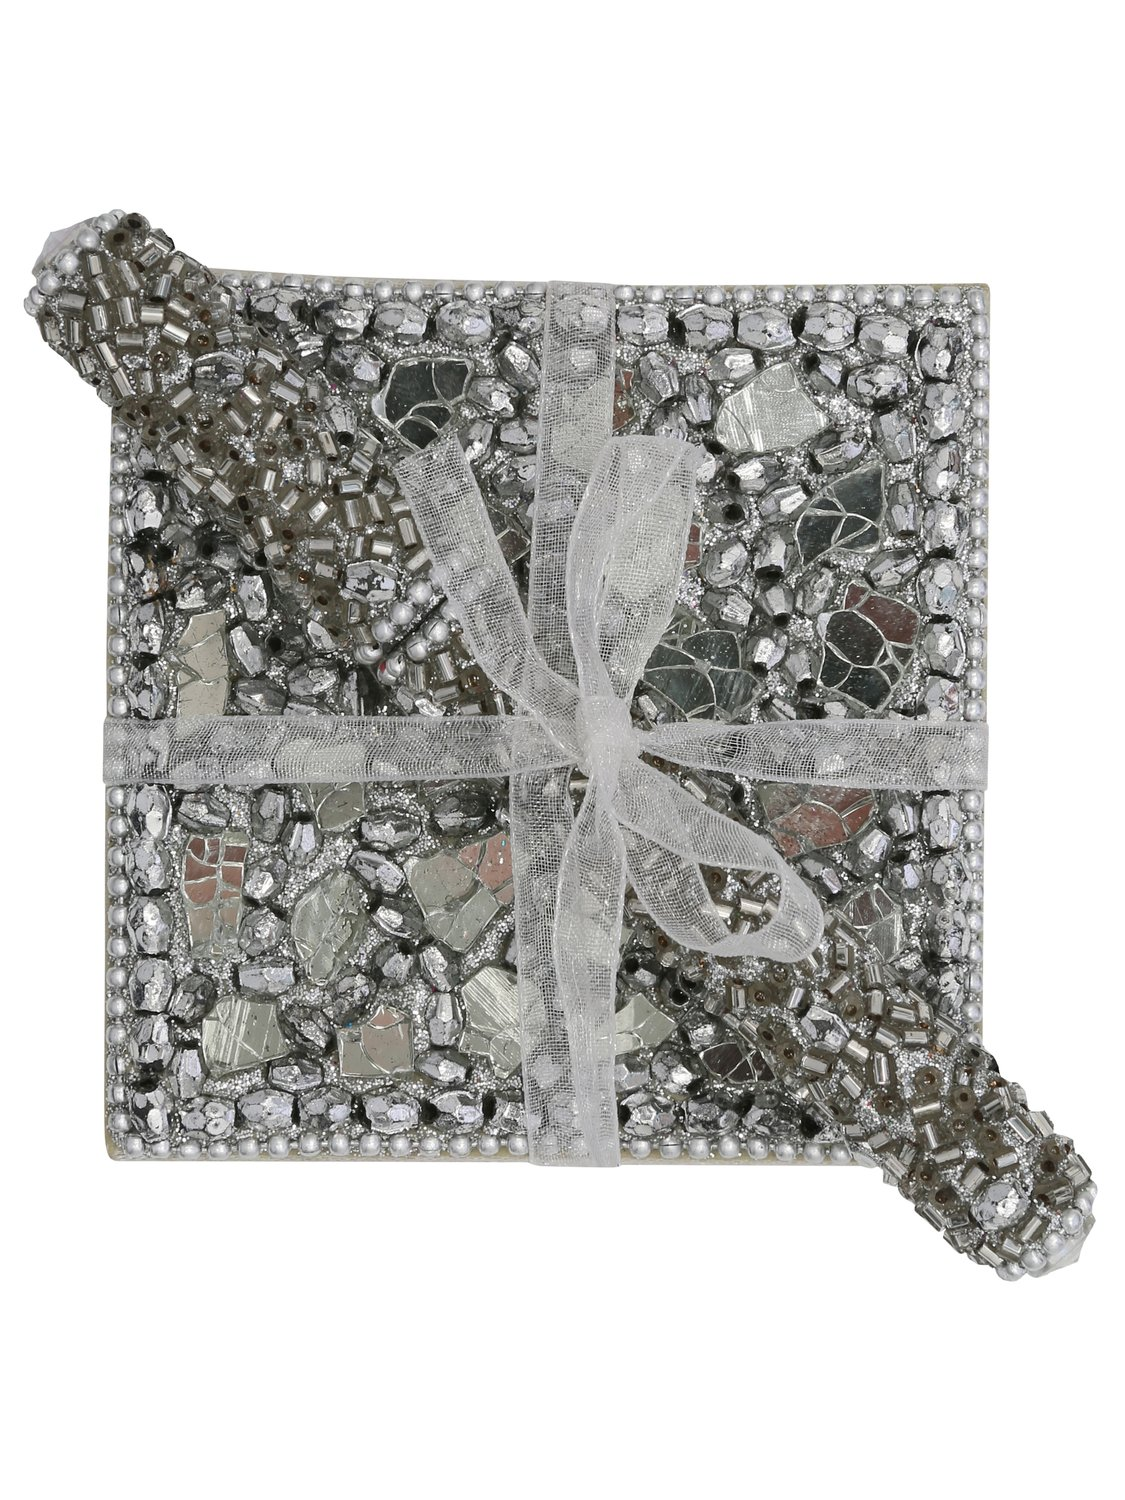 Bead and mirror detail Embellished shellac design Notebook and matching pen ribbon tied gift set - Silver